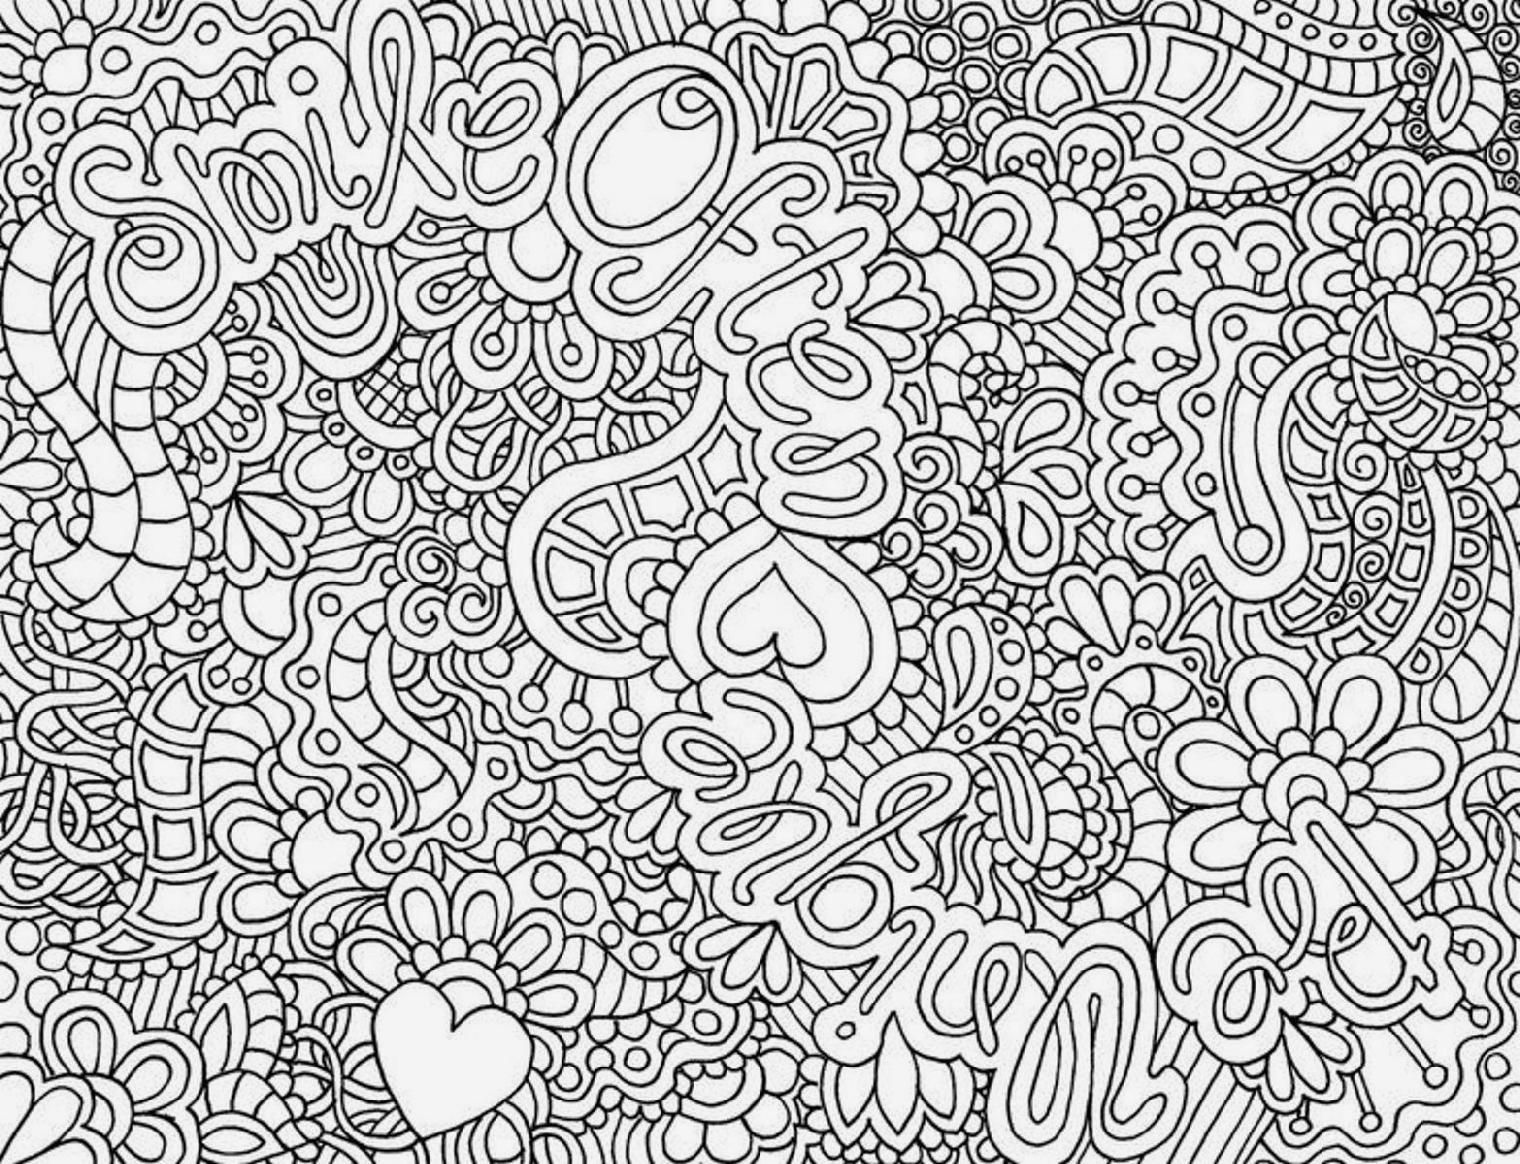 Free online coloring pages for adults - These Free Printable Coloring Book Pages Of Flowers Provide Hours Of Online And